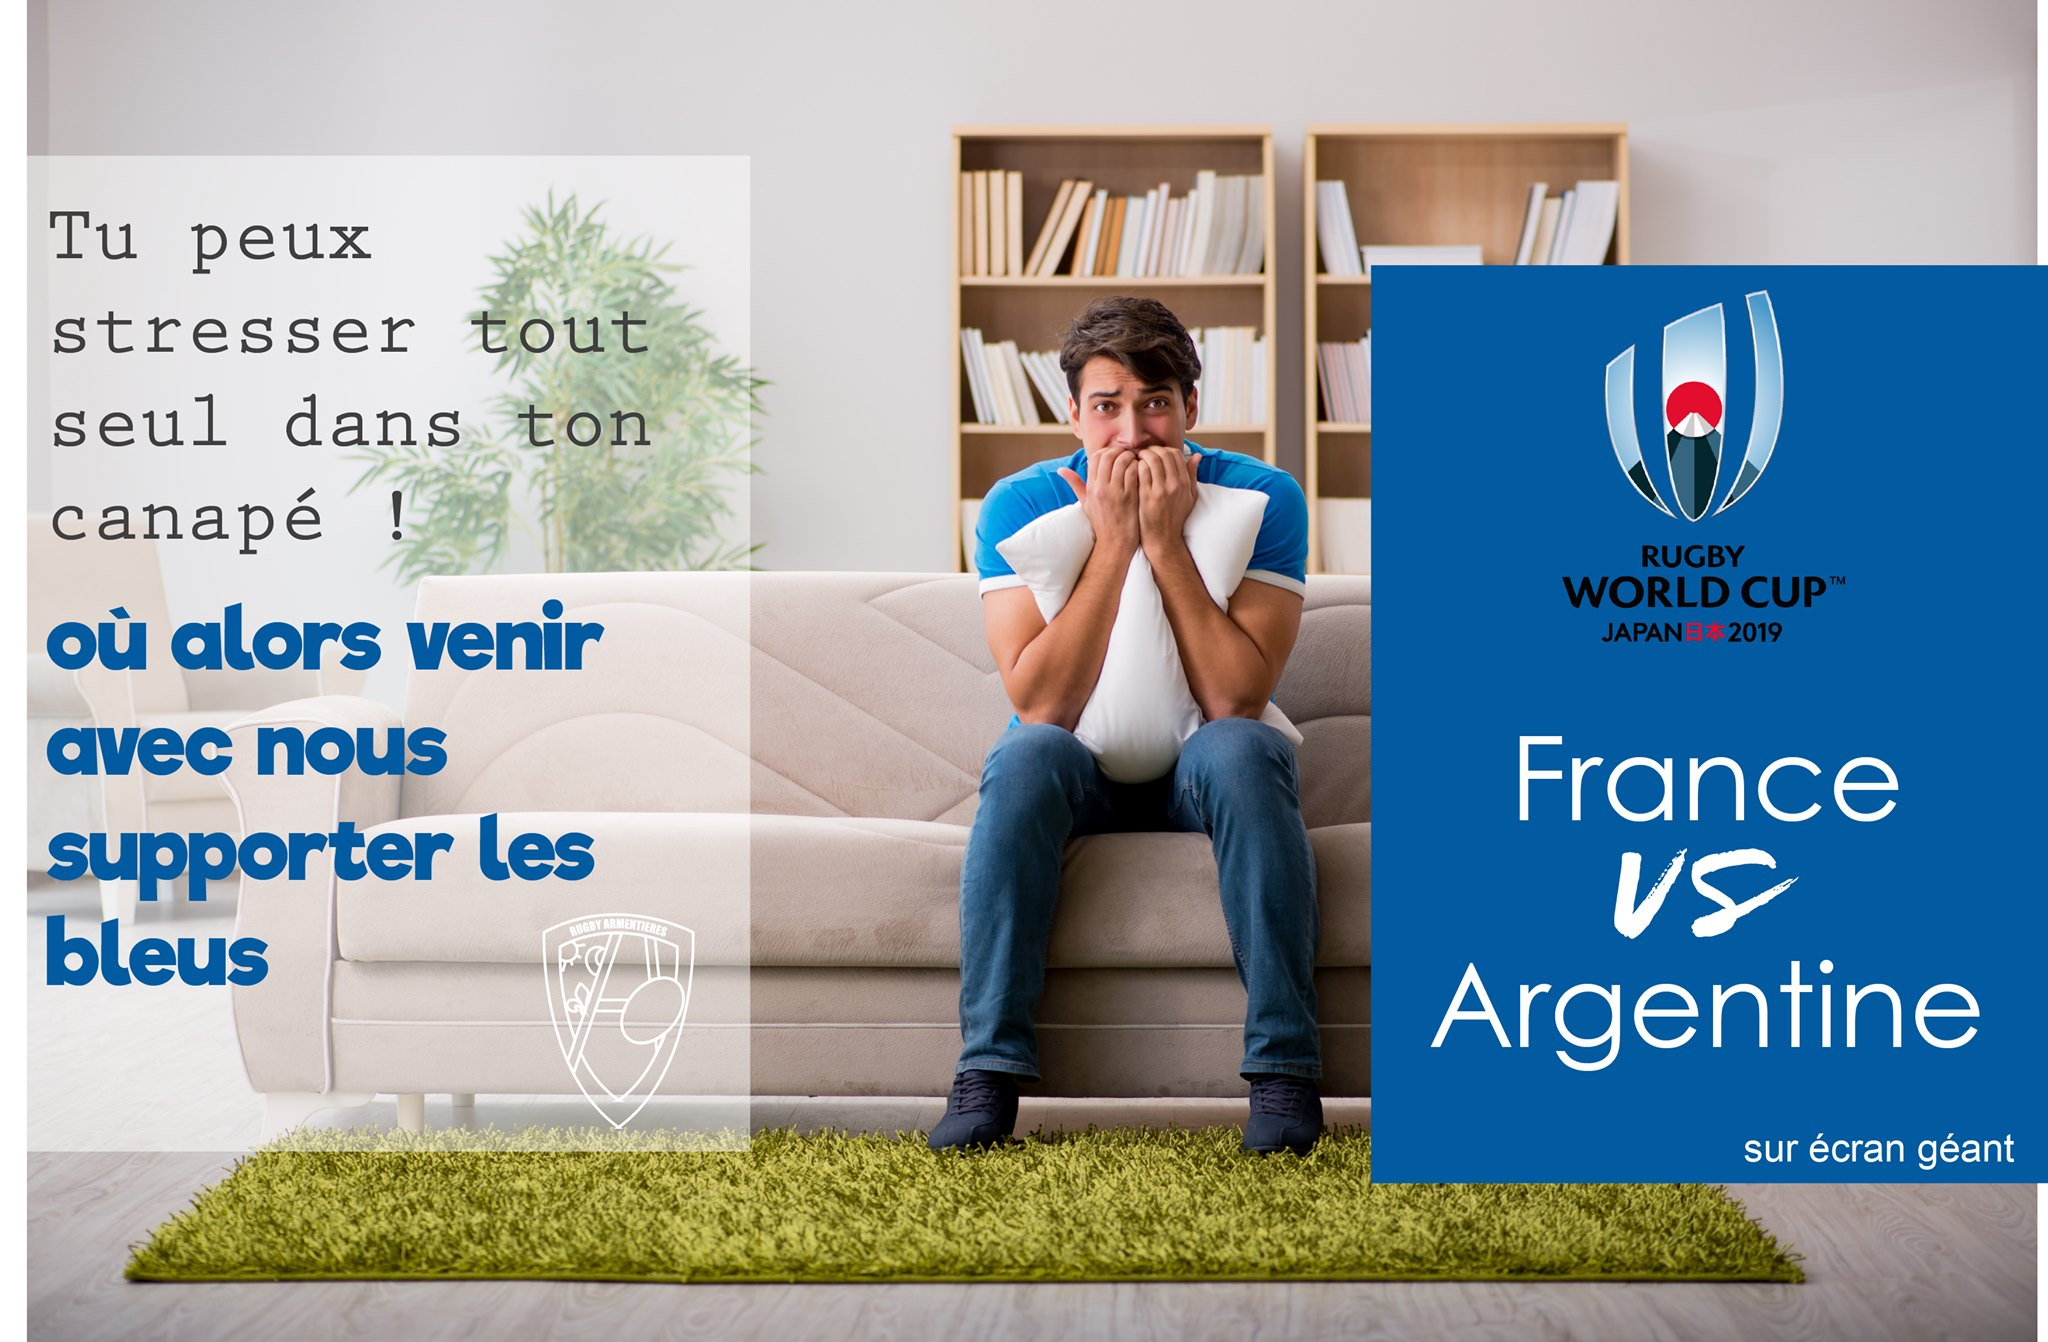 retransmission du match France - Argentine